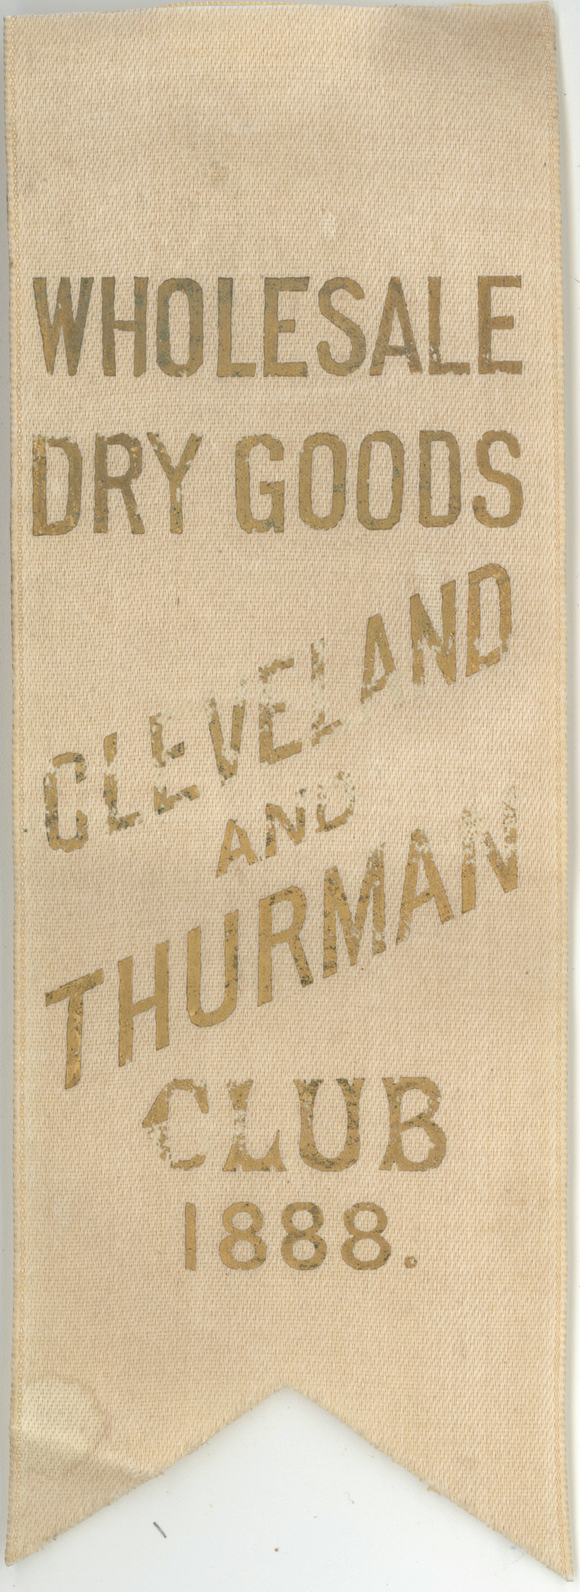 WHOLESALE DRY GOODS CLEVELAND AND THURMAN CLUB 1888.